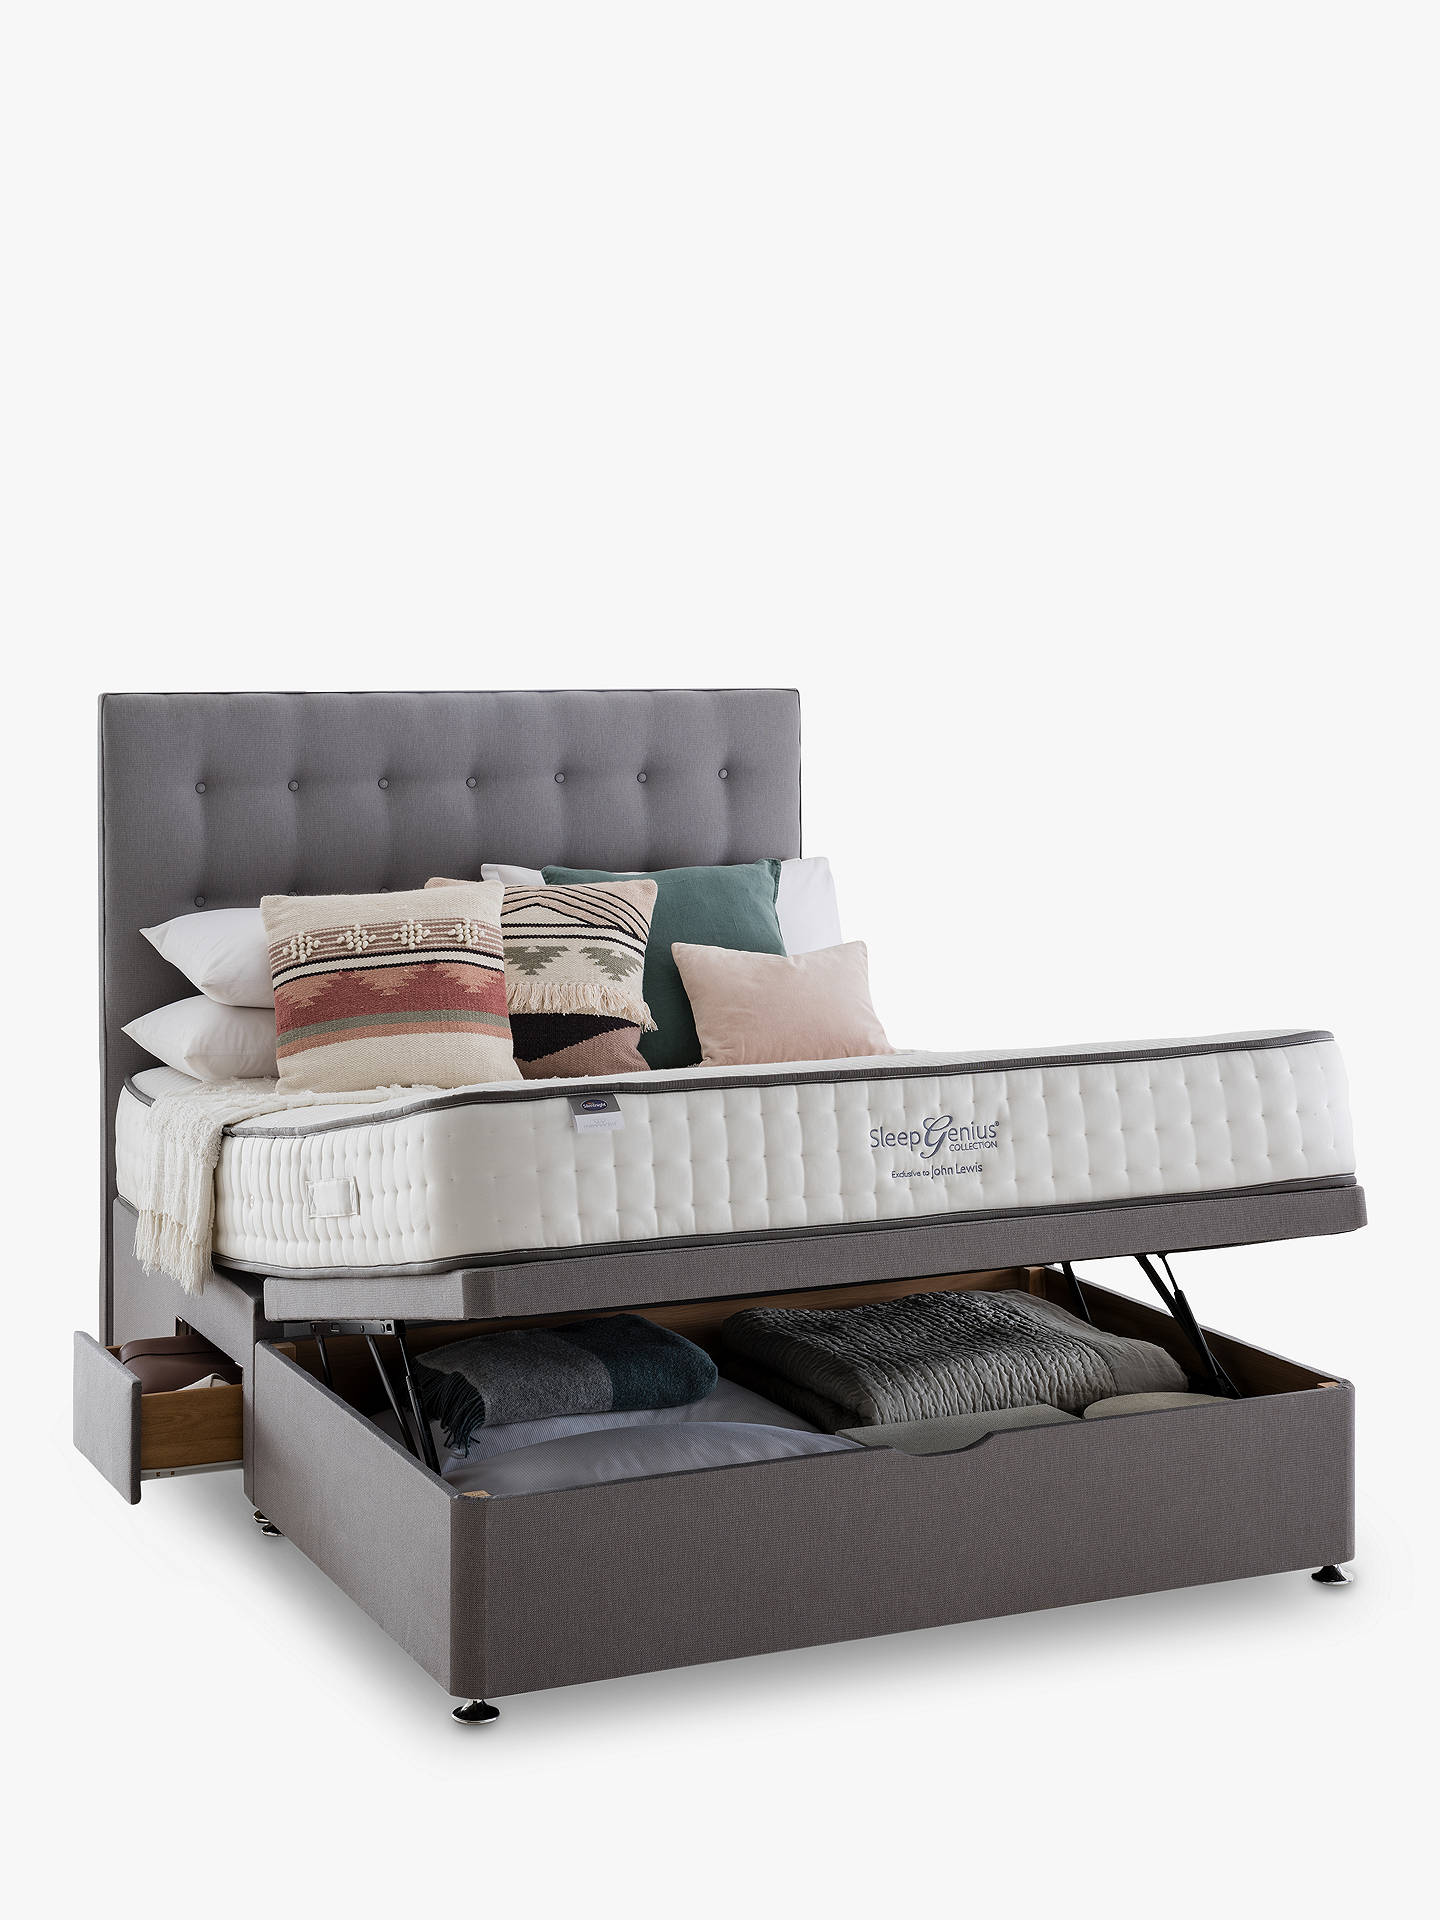 Buy Silentnight 2 Drawer Continental End Divan Storage Bed, Double Online at johnlewis.com